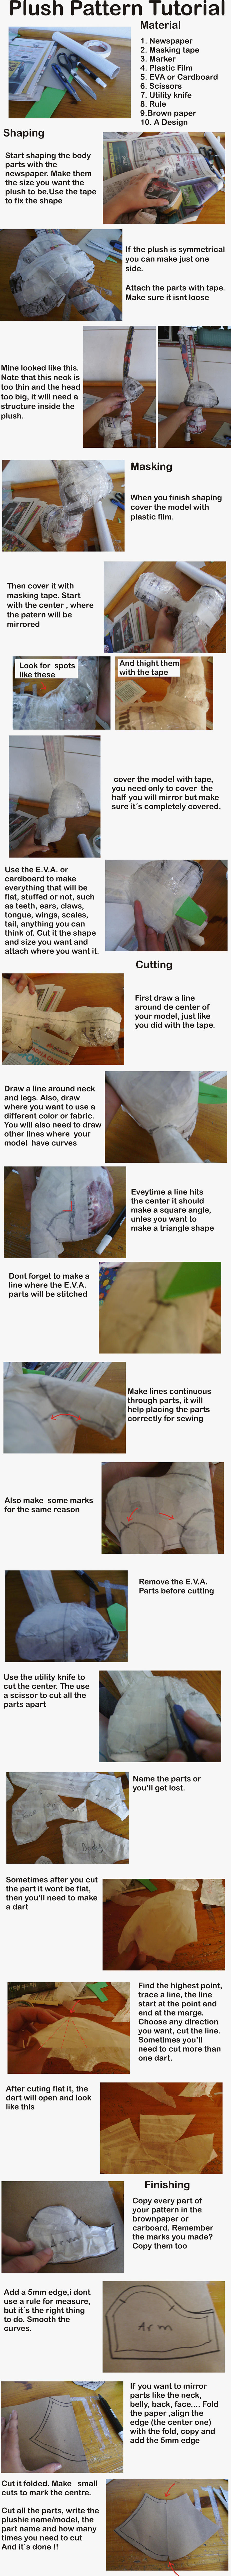 Plushie Pattern Tutorial by NataliaVulpes